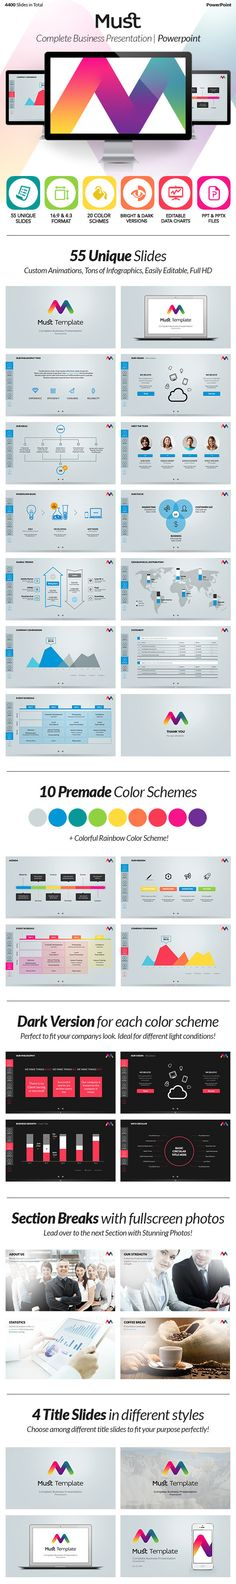 ManGo Presentation Template Pinterest Presentation Slides - Best of company profile ppt scheme